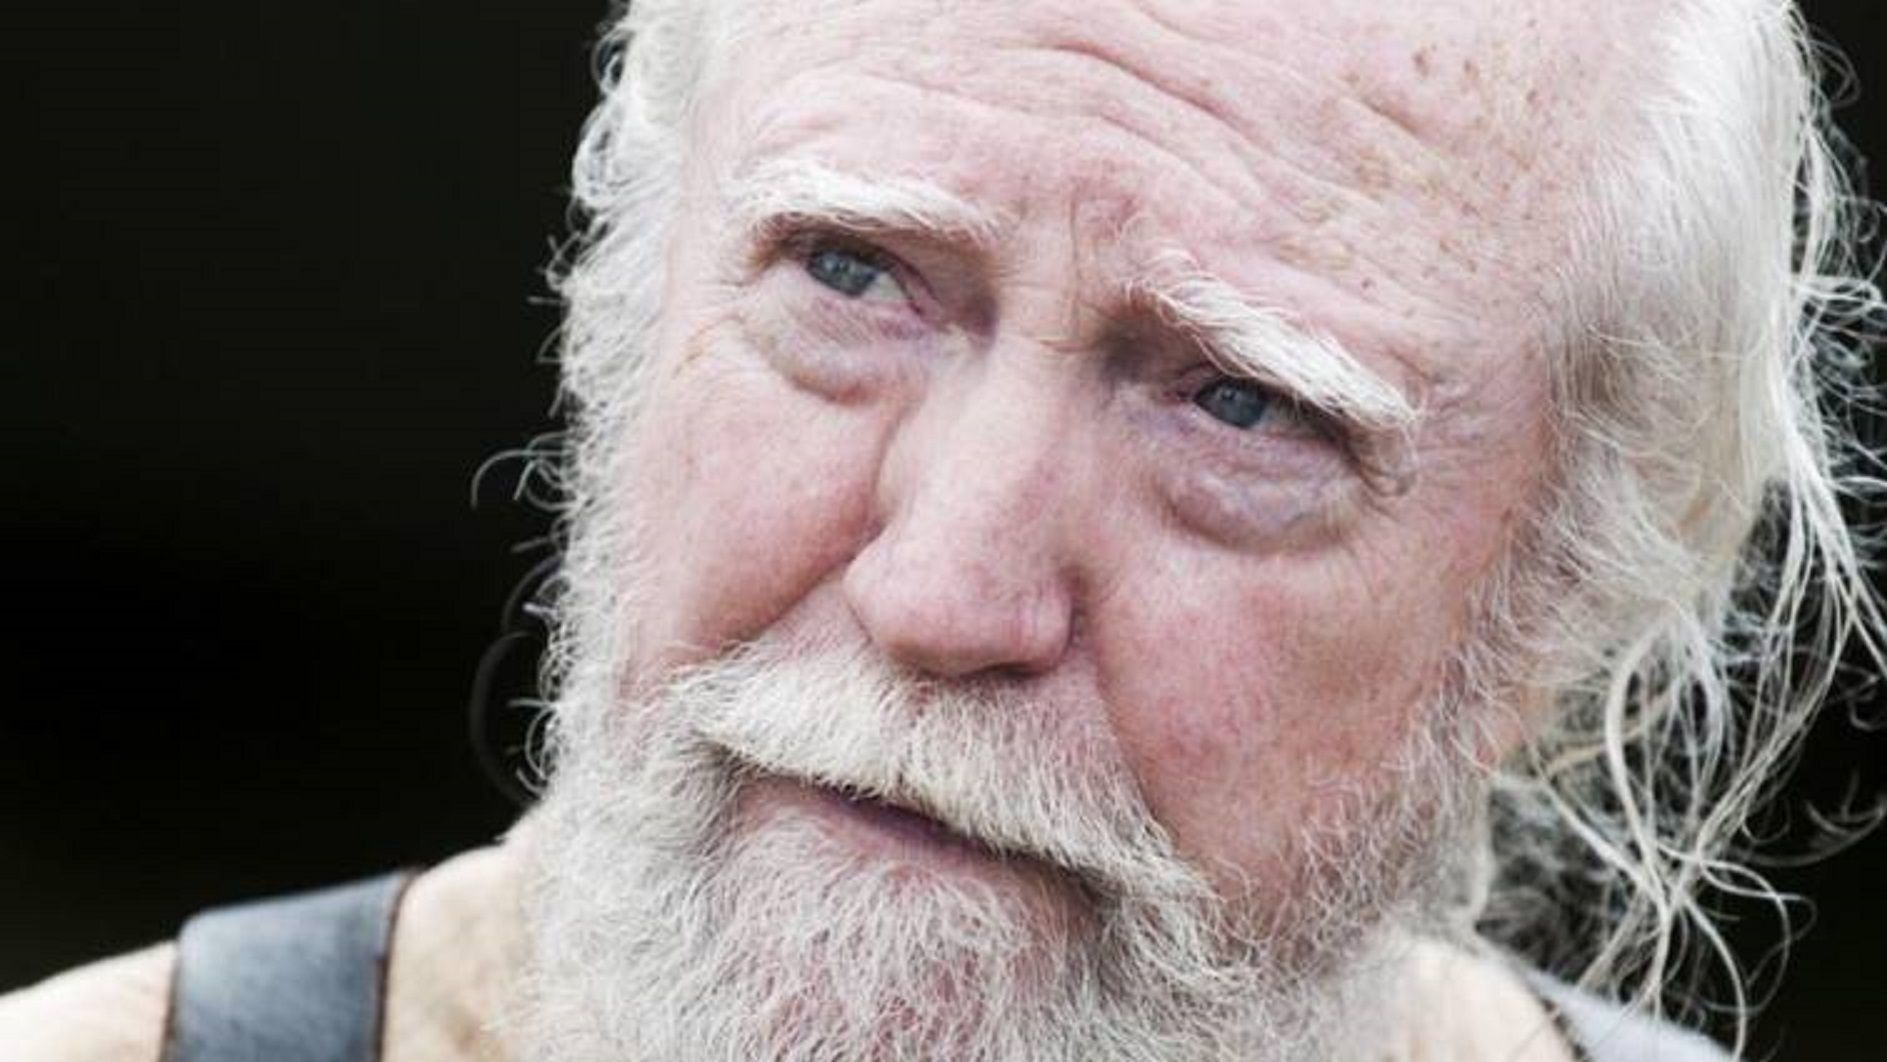 Conmoción entre los fanáticos de The Walking Dead: murió Scott Wilson, el actor que interpretó a Hershel